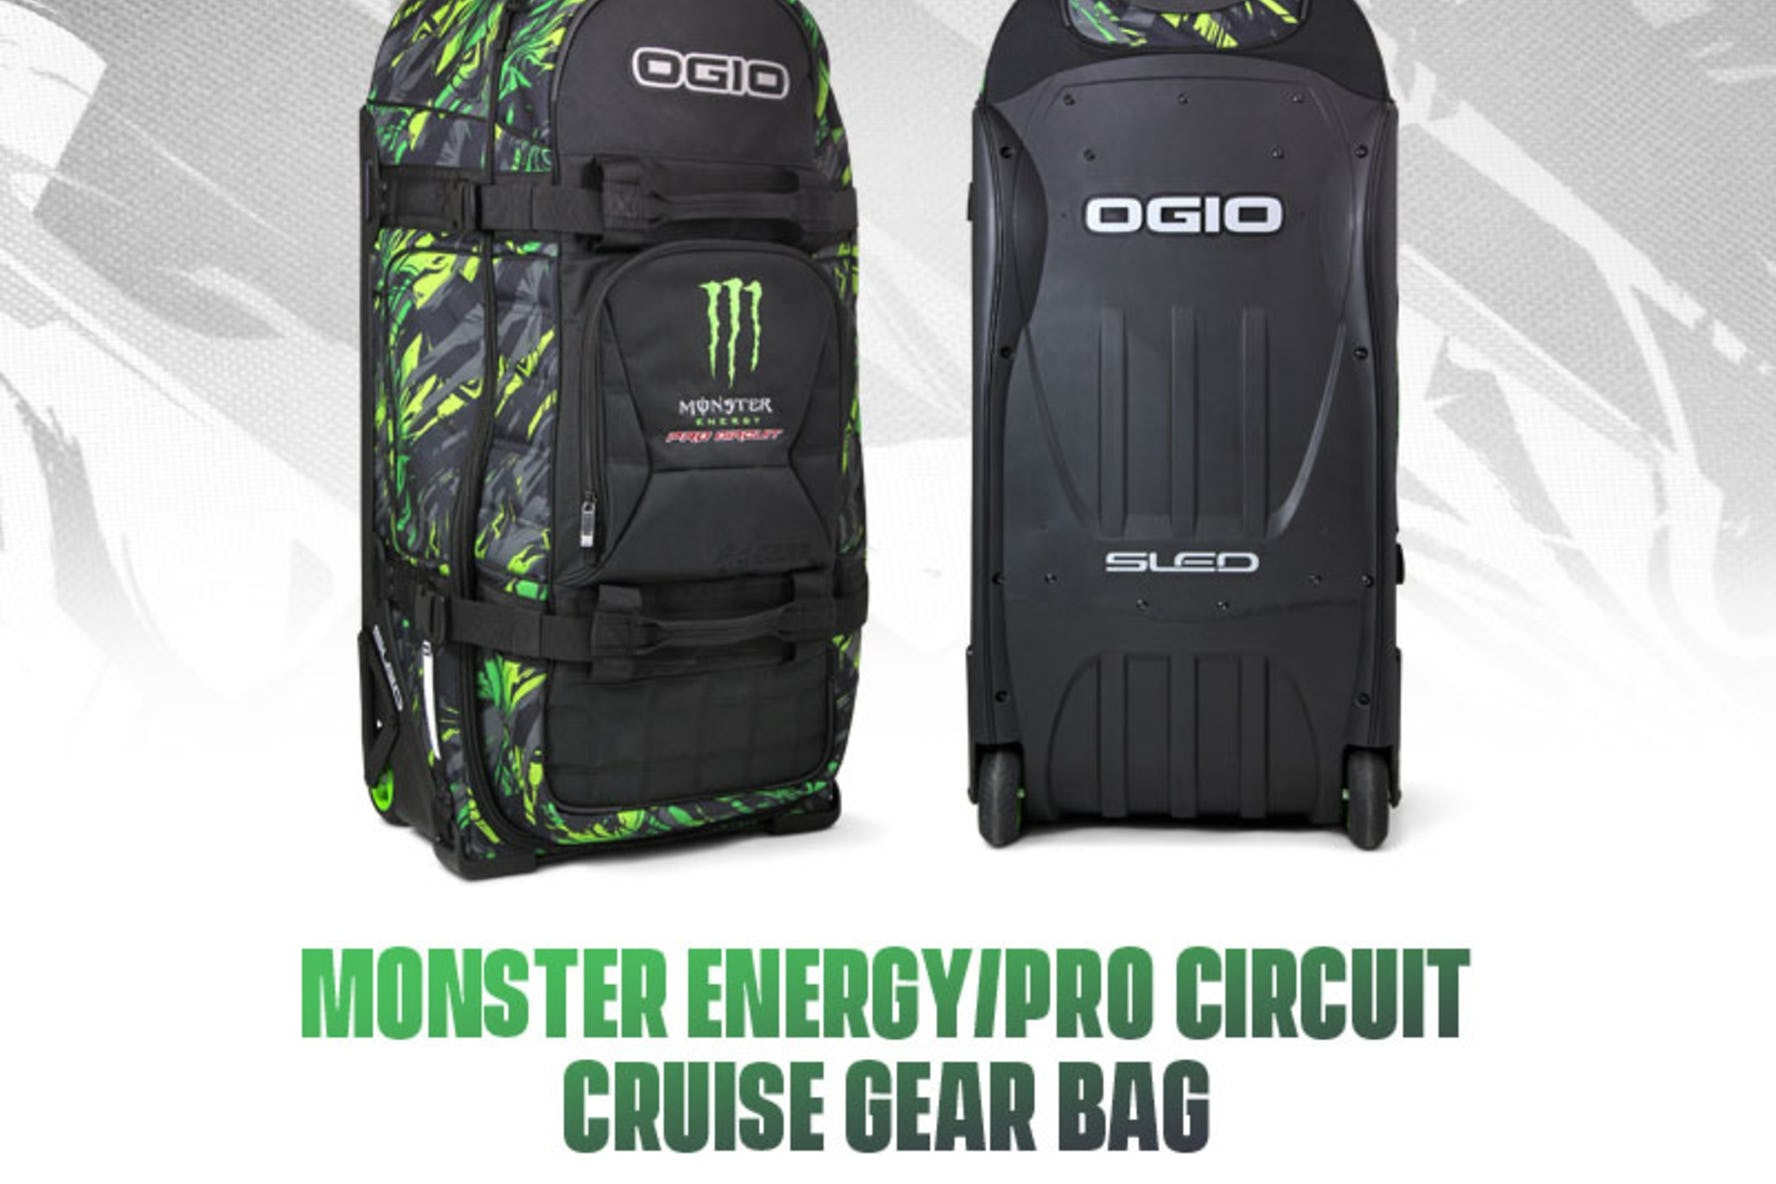 Monster Energy/Pro Circuit Cruise Gear Bag Now Available - Racer X